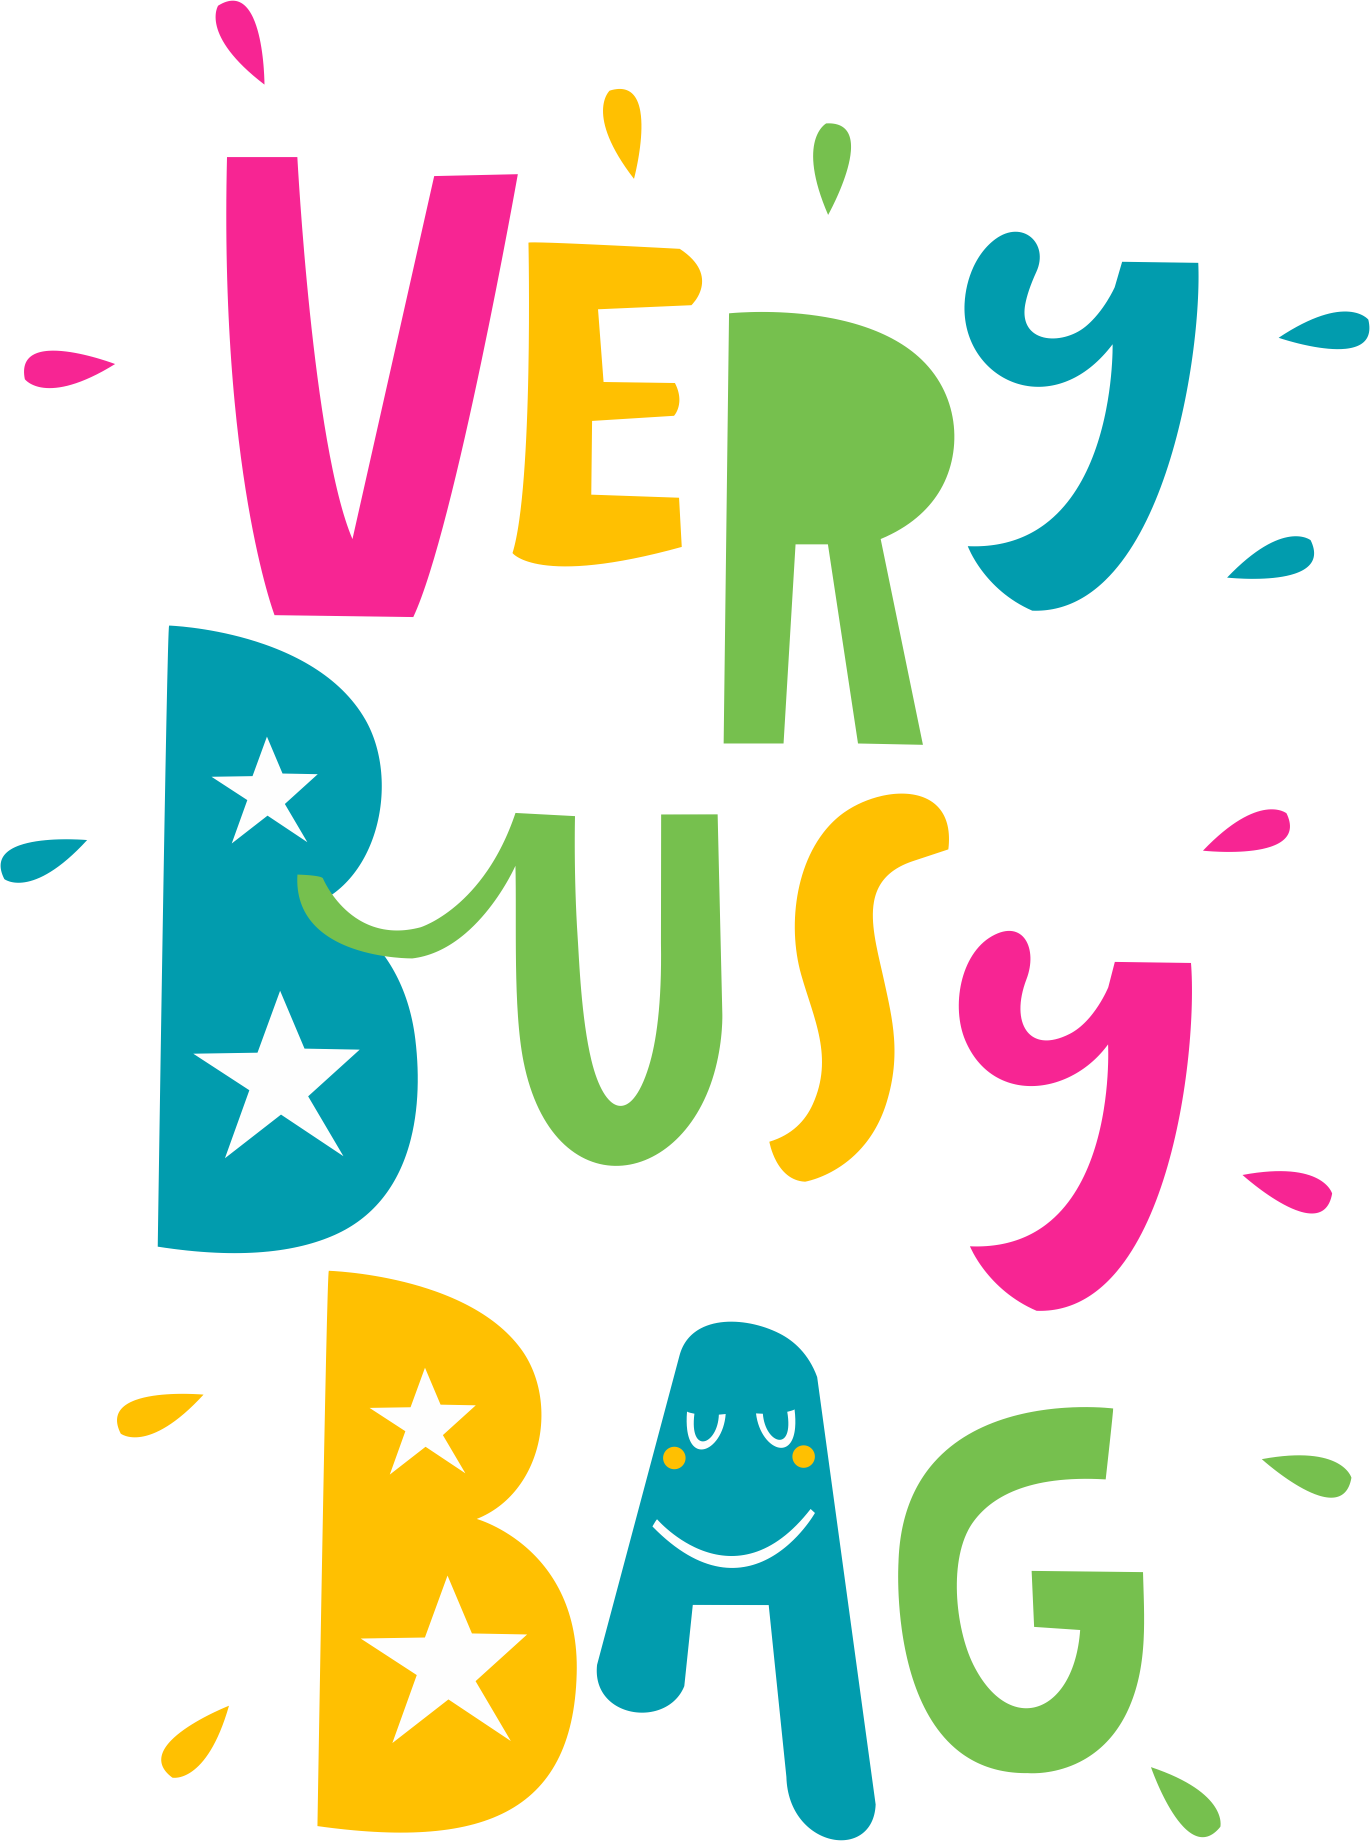 Design a playful logo for Very Busy Bag